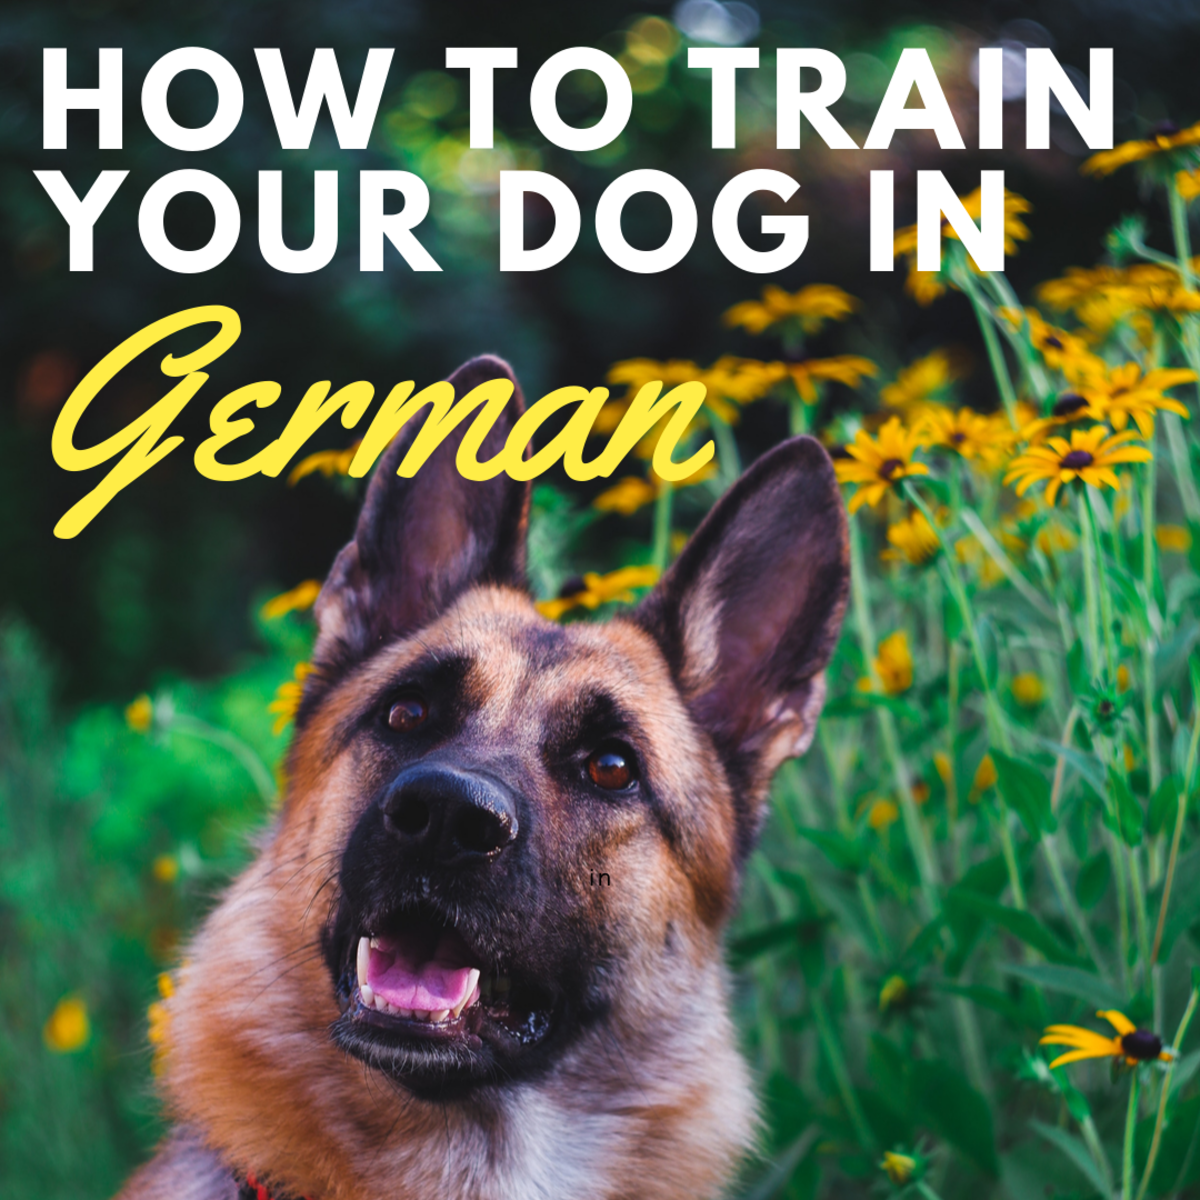 How to Teach Your Dog Cues in German